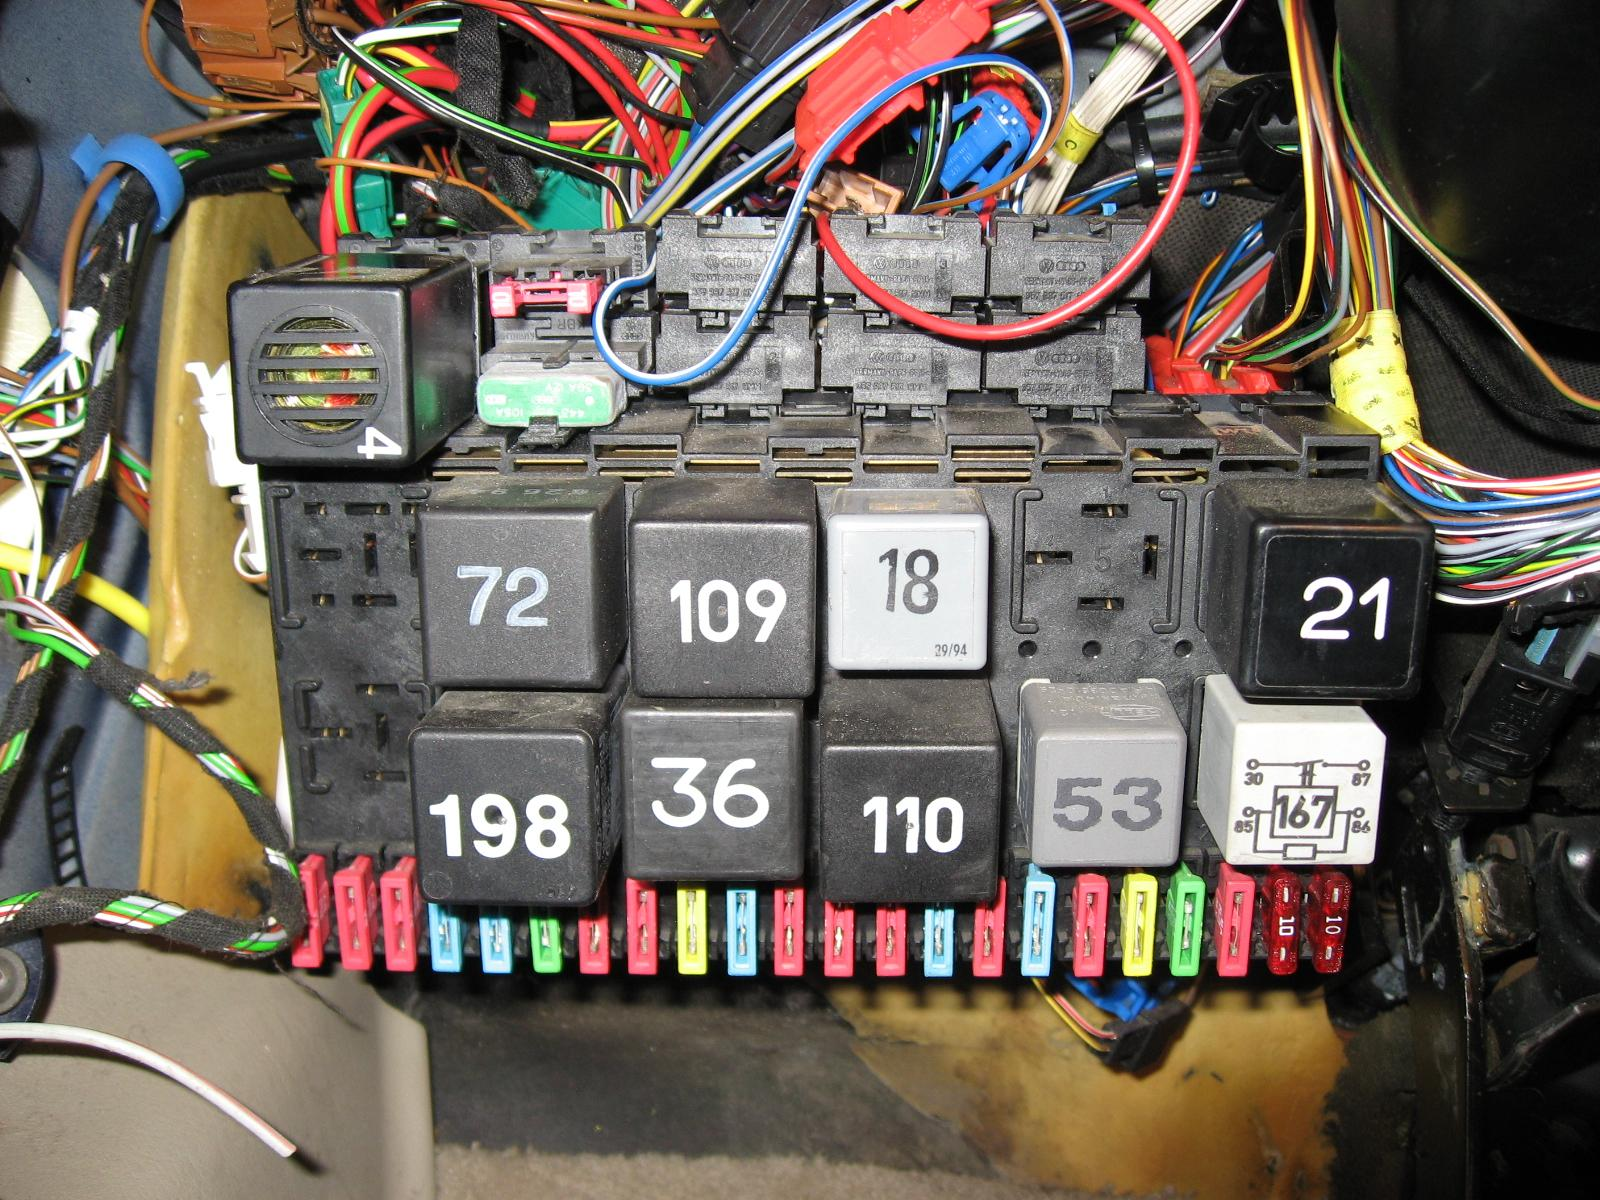 2001 audi a4 fuse box location vw fox fuel pump vw free engine image for user manual audi a4 fuse box location 1999